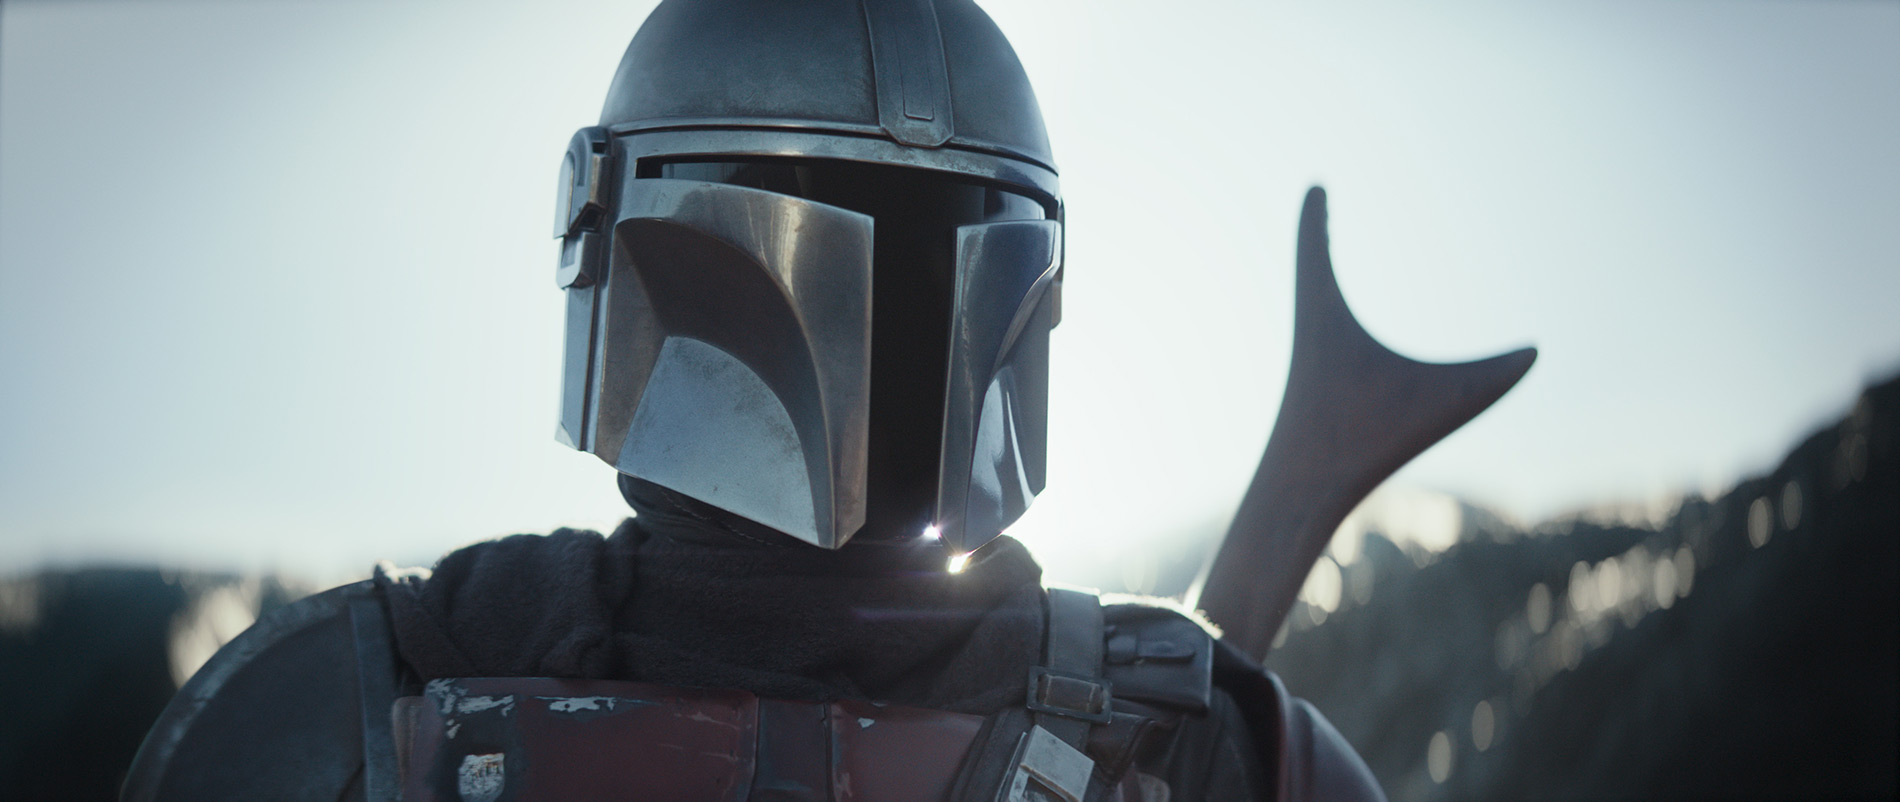 Disney+ Launch: The Mandalorian Ushers in a New Age of Star Wars Stories